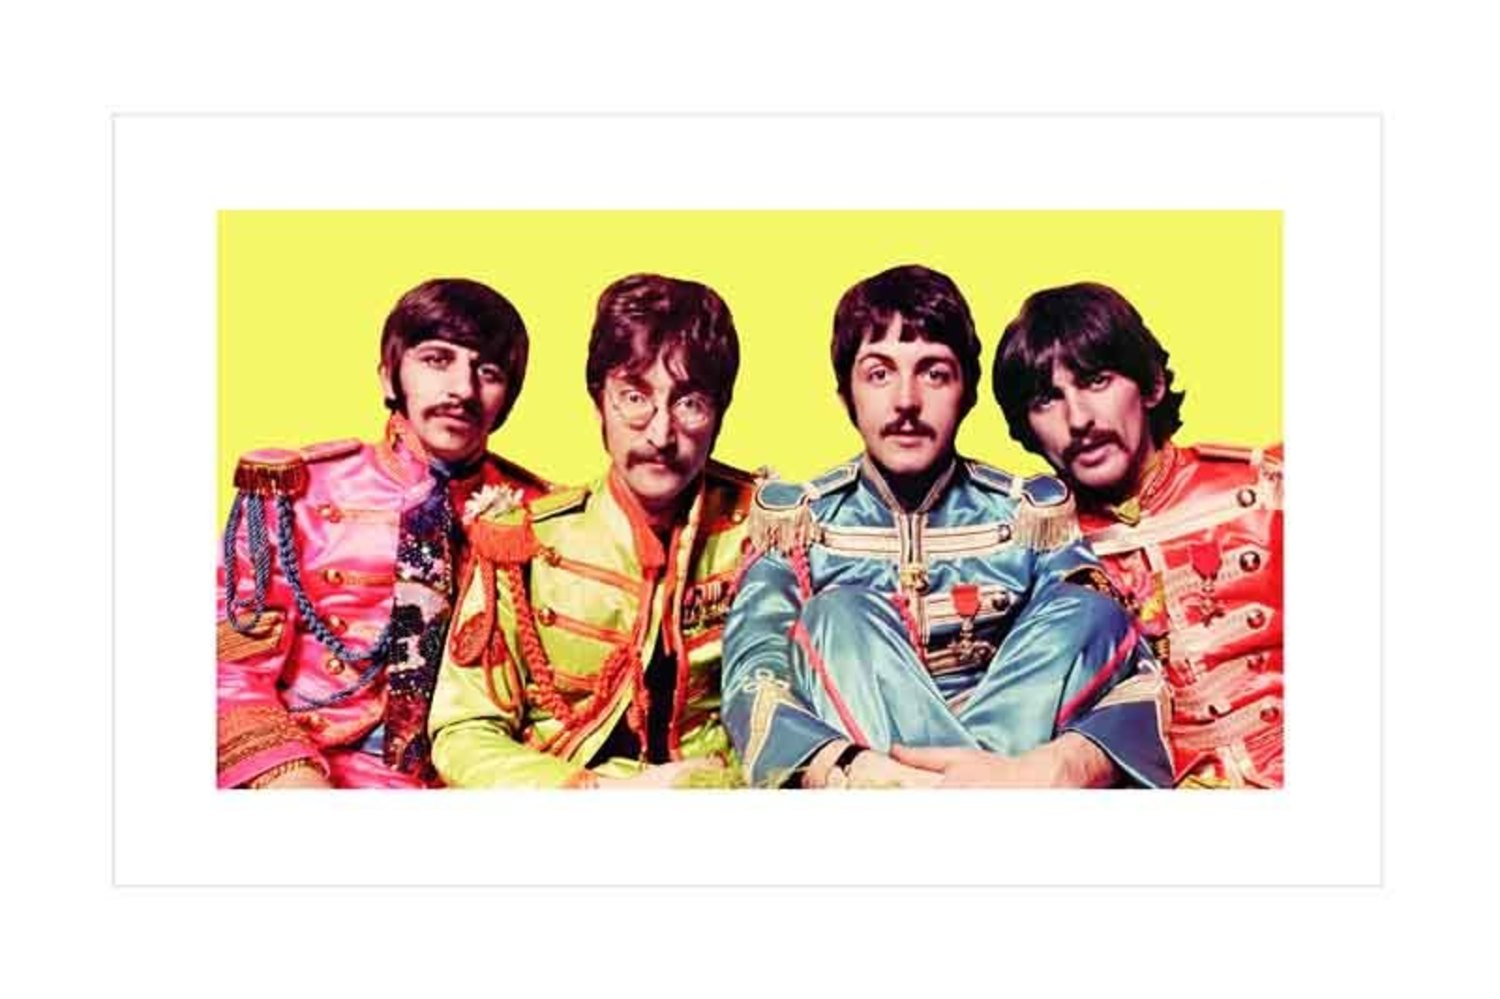 The Beatles - Sgt. Pepper's Lonley Heart Club Band Outtake by Miachael Cooper